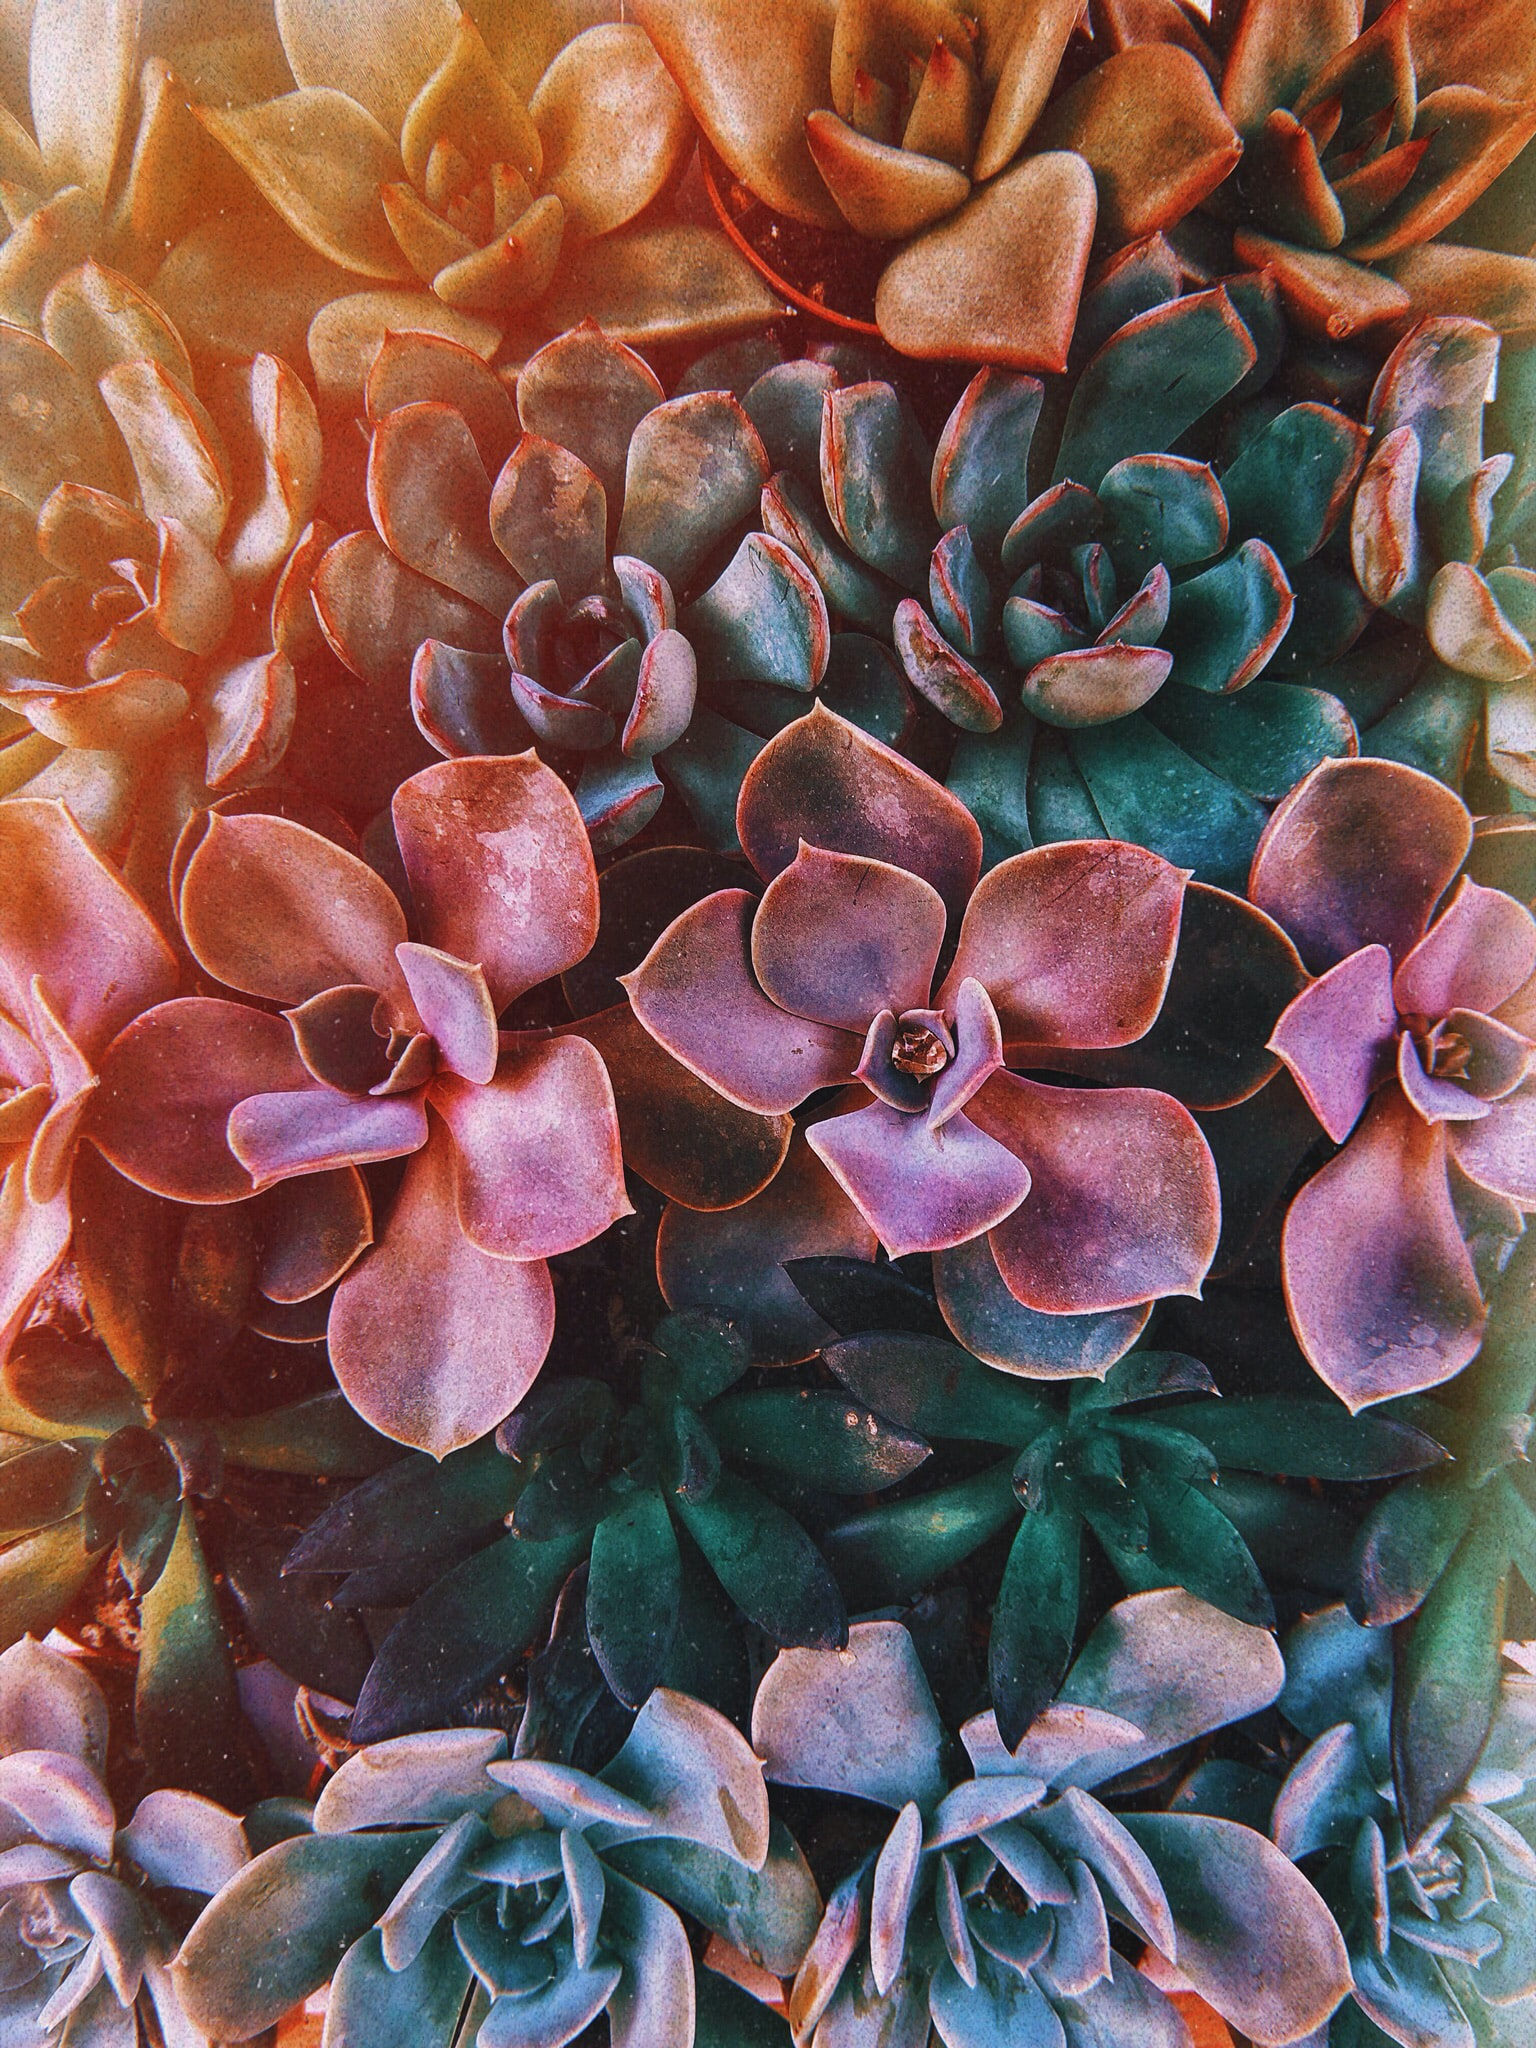 500 Succulents Pictures Hd Download Free Images On Unsplash